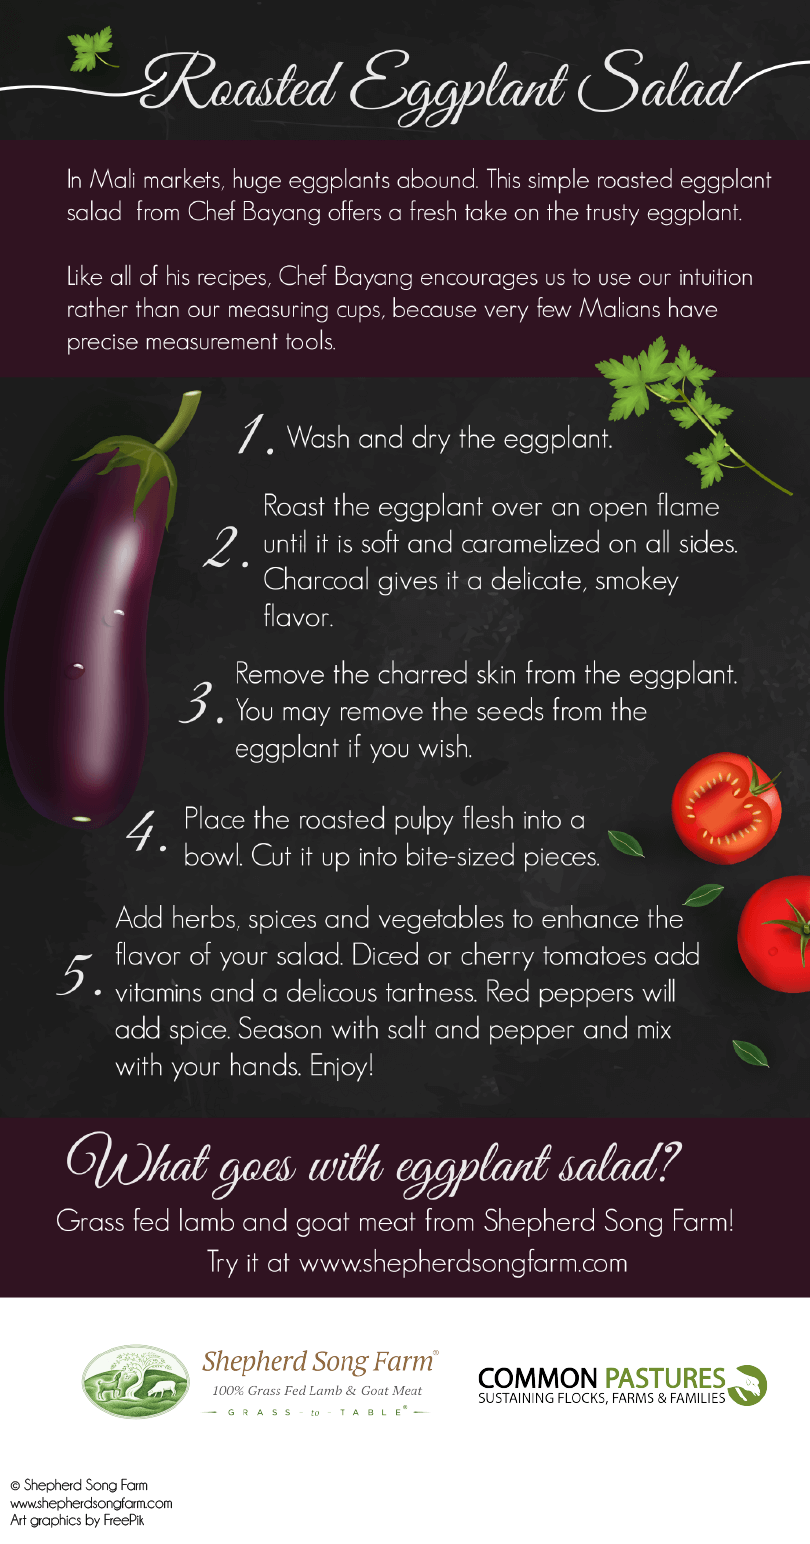 Roasted eggplant salad recipe infographic